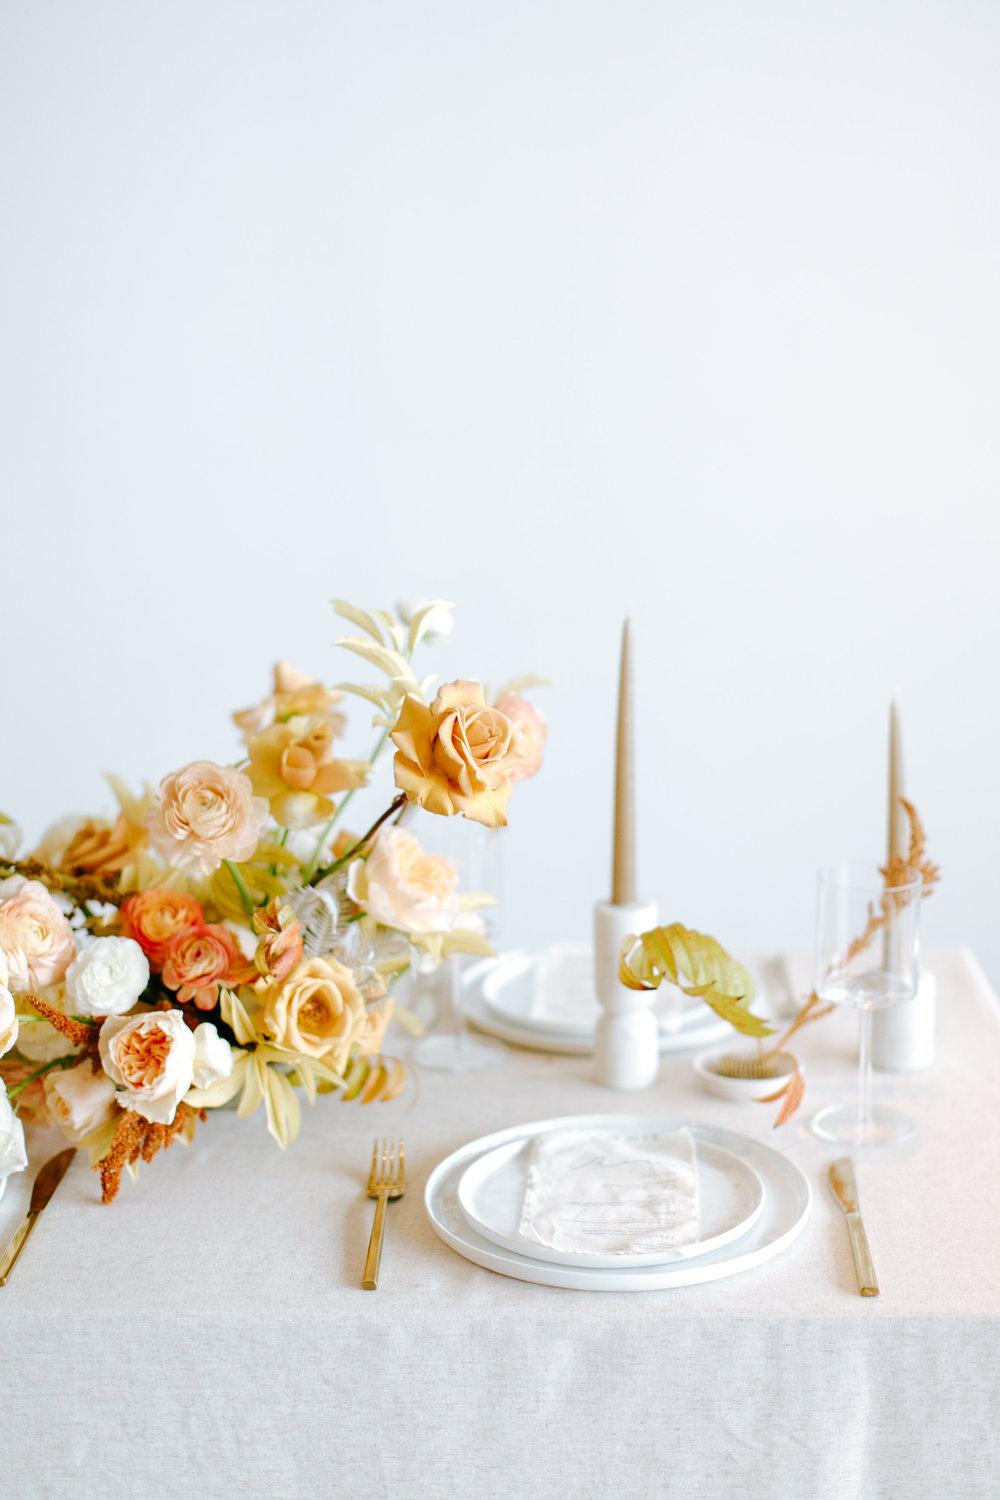 Thanksgivingstyledshoot009.JPG